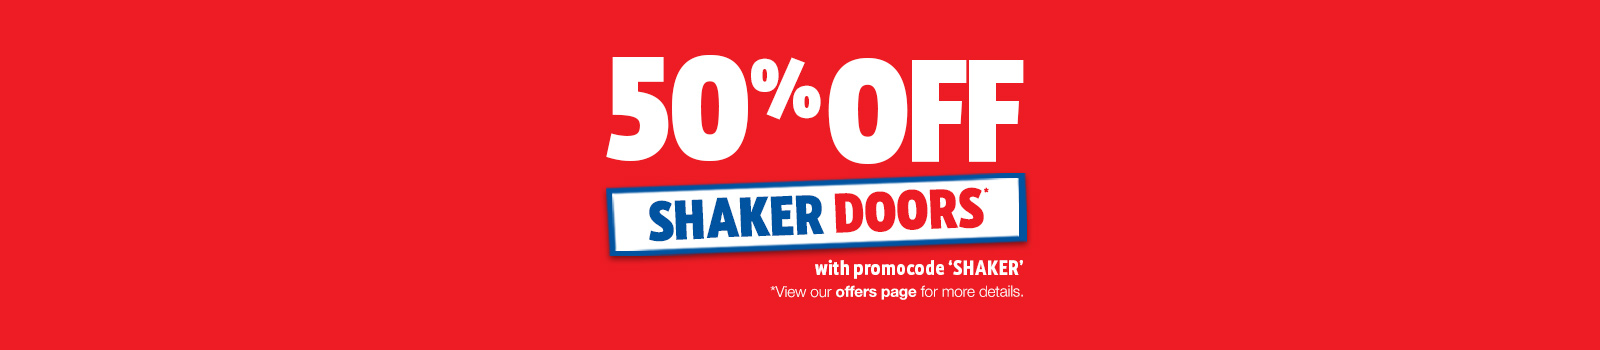 50% off shaker doors using the code shaker